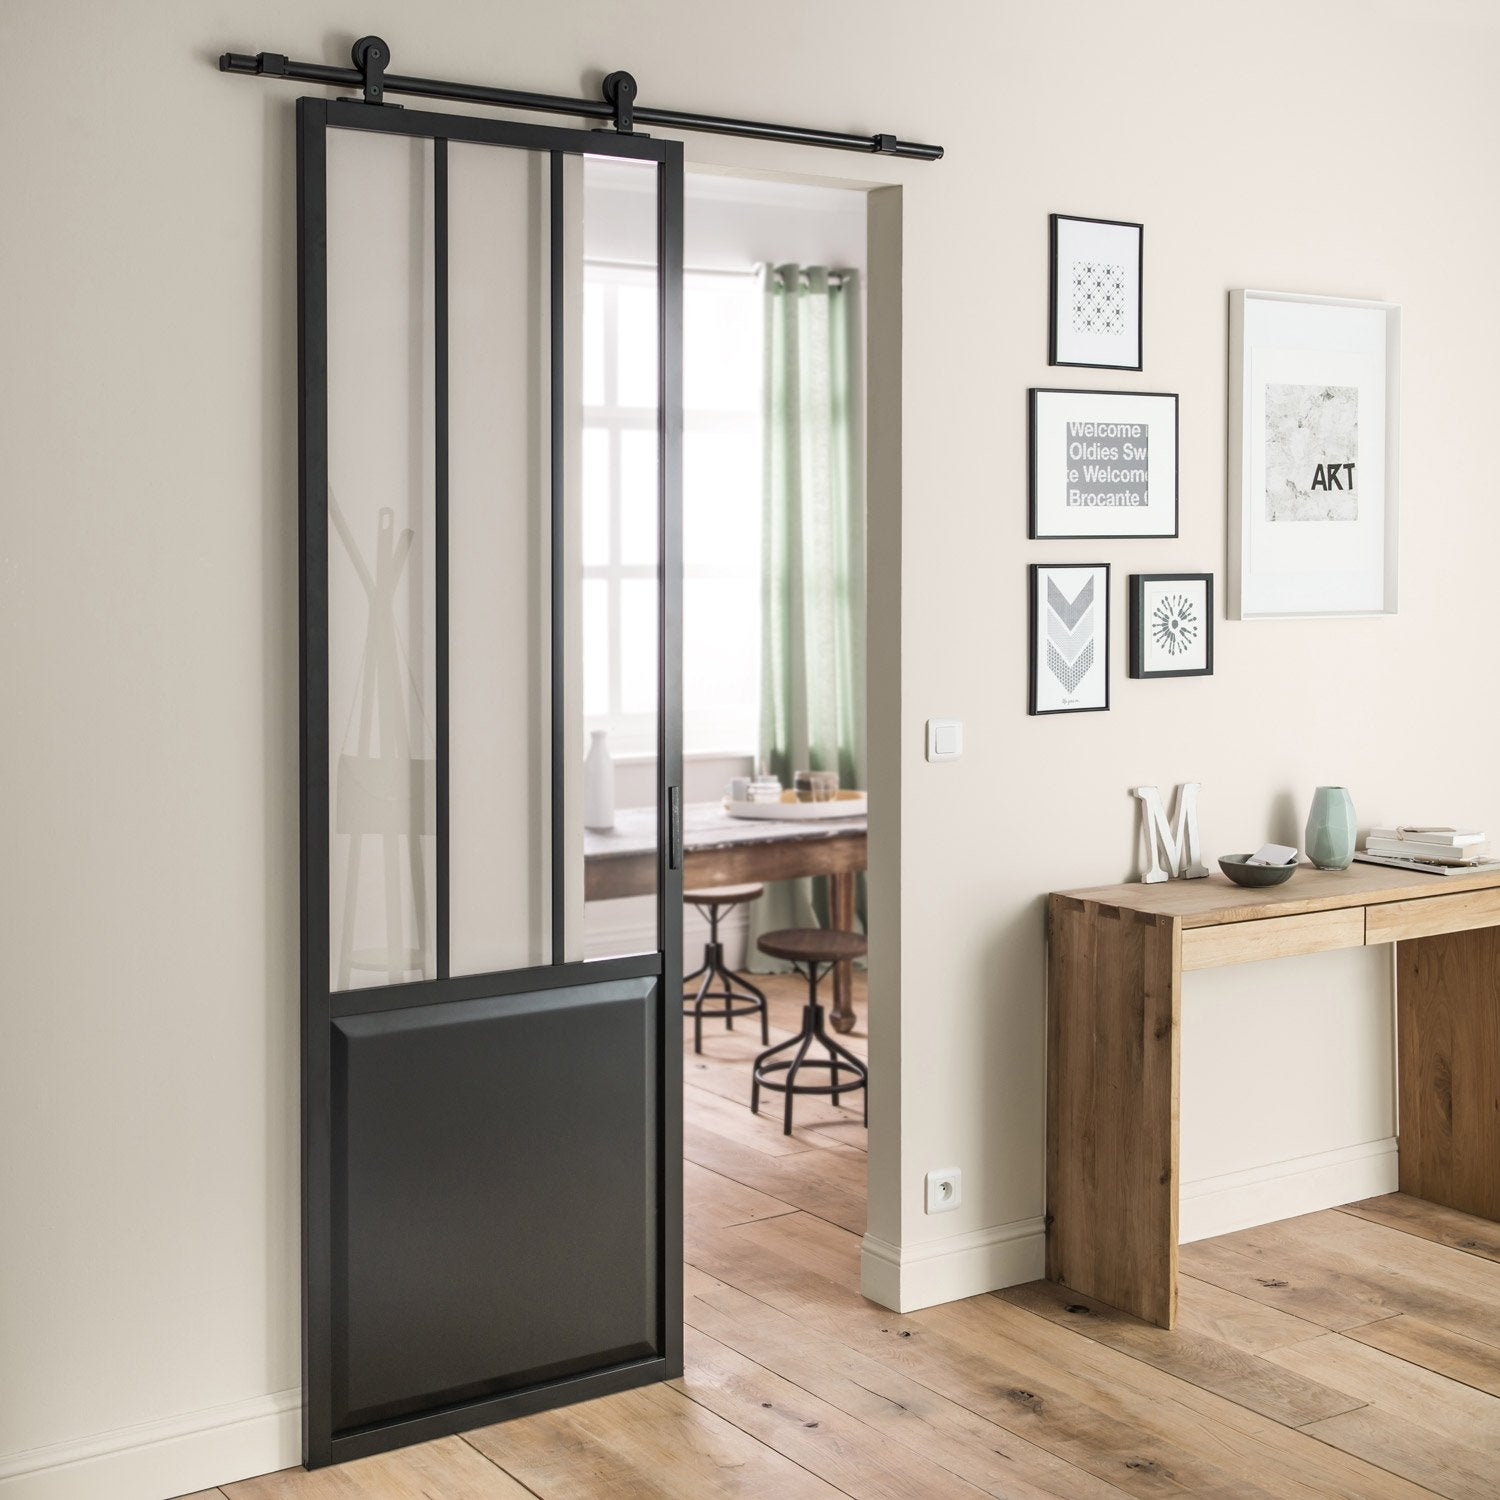 Ensemble porte coulissante atelier mdf rev tu avec le rail for Porte atelier